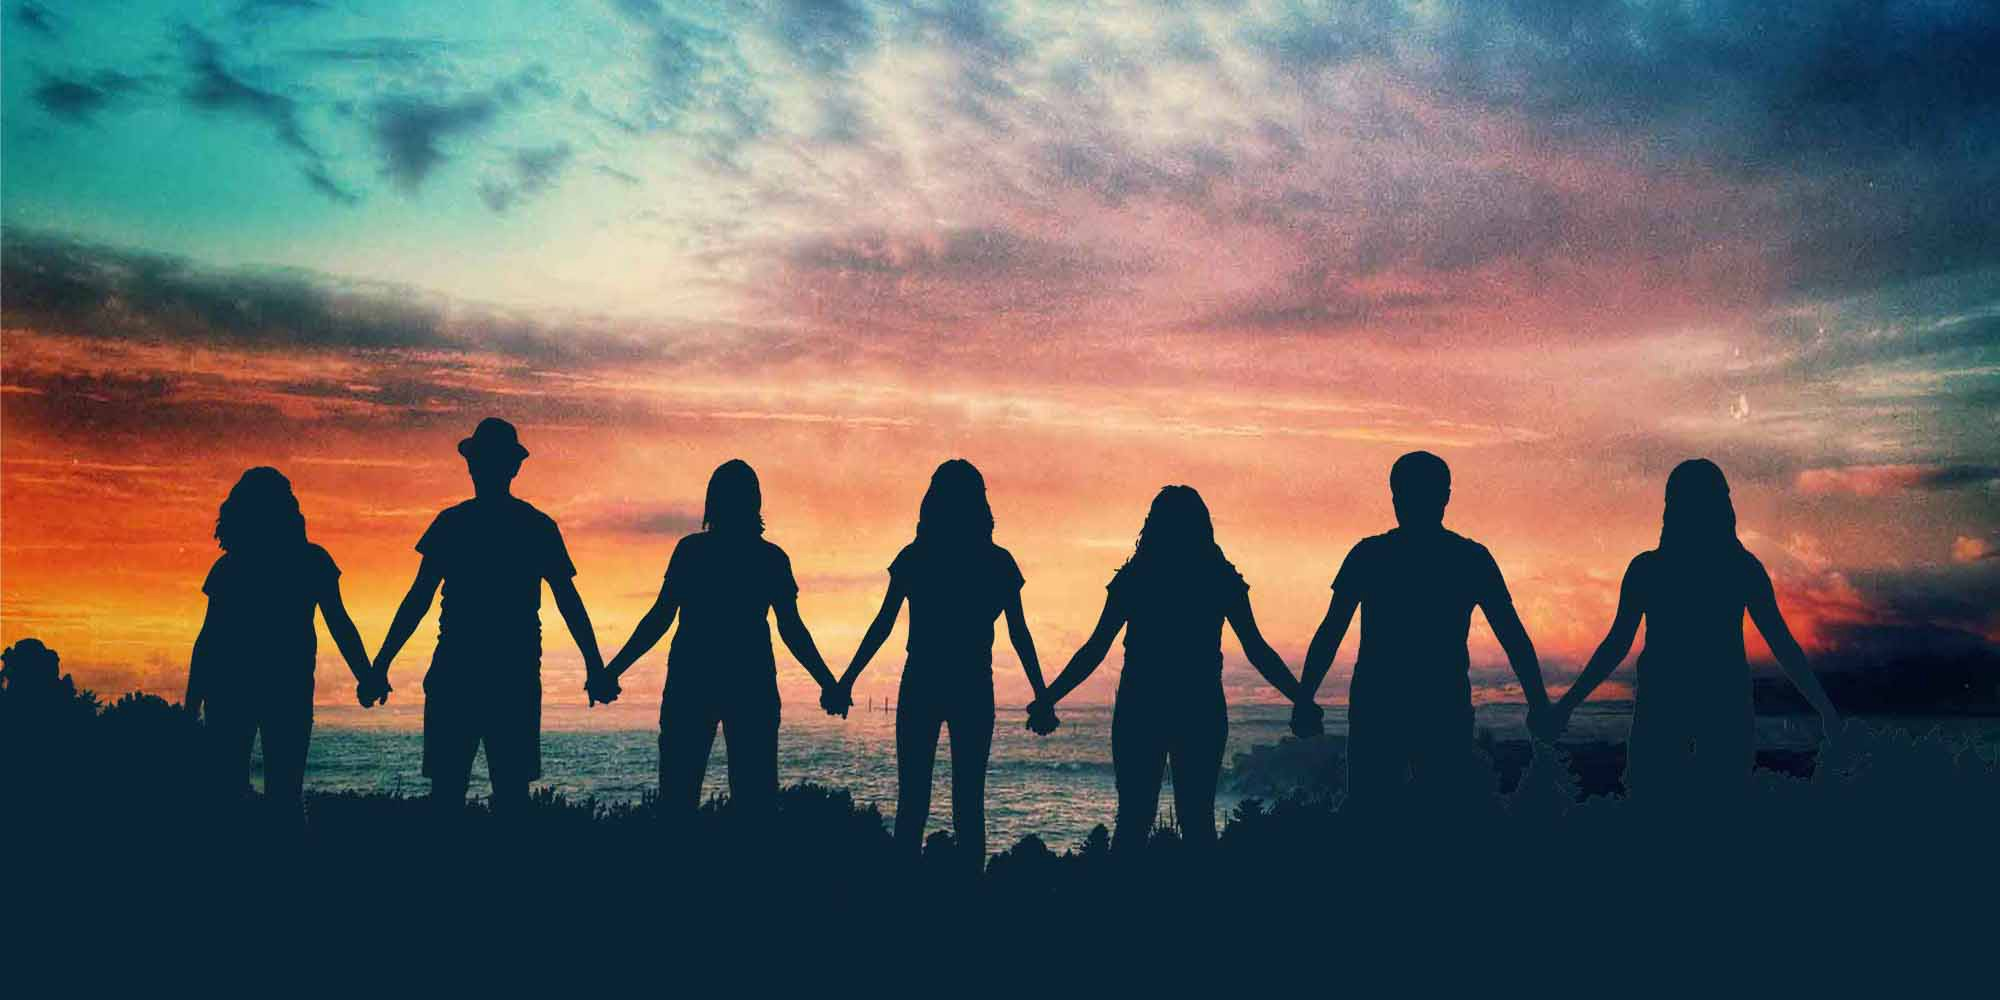 People holding hands in silhouette against sunset sky